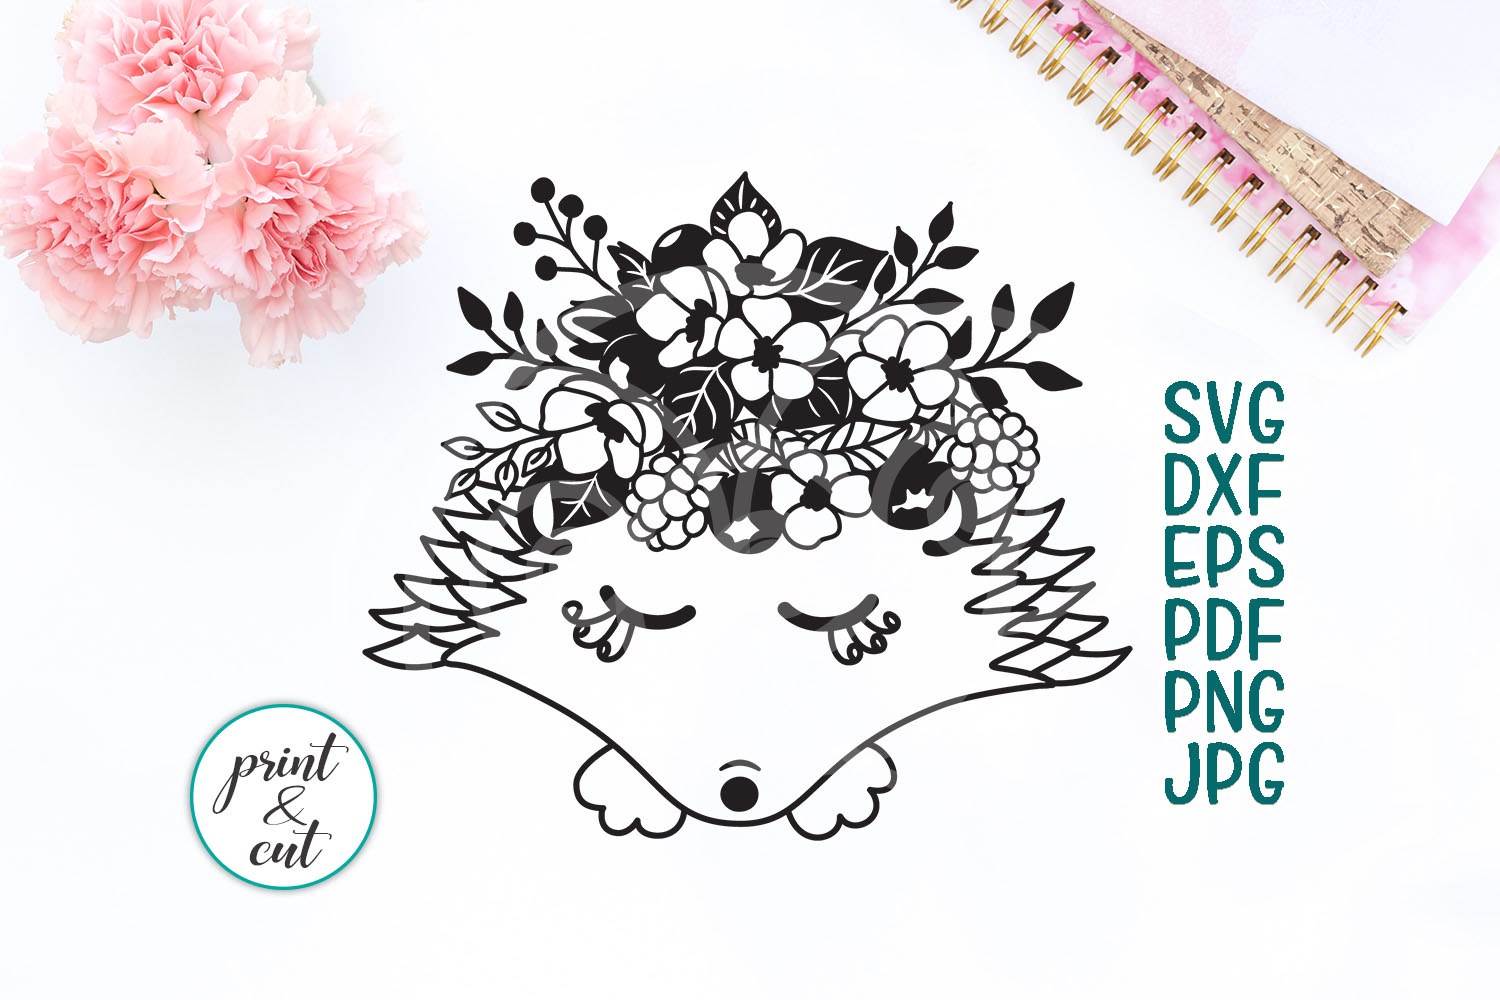 Download Free Hedgehog Graphic By Cornelia Creative Fabrica for Cricut Explore, Silhouette and other cutting machines.